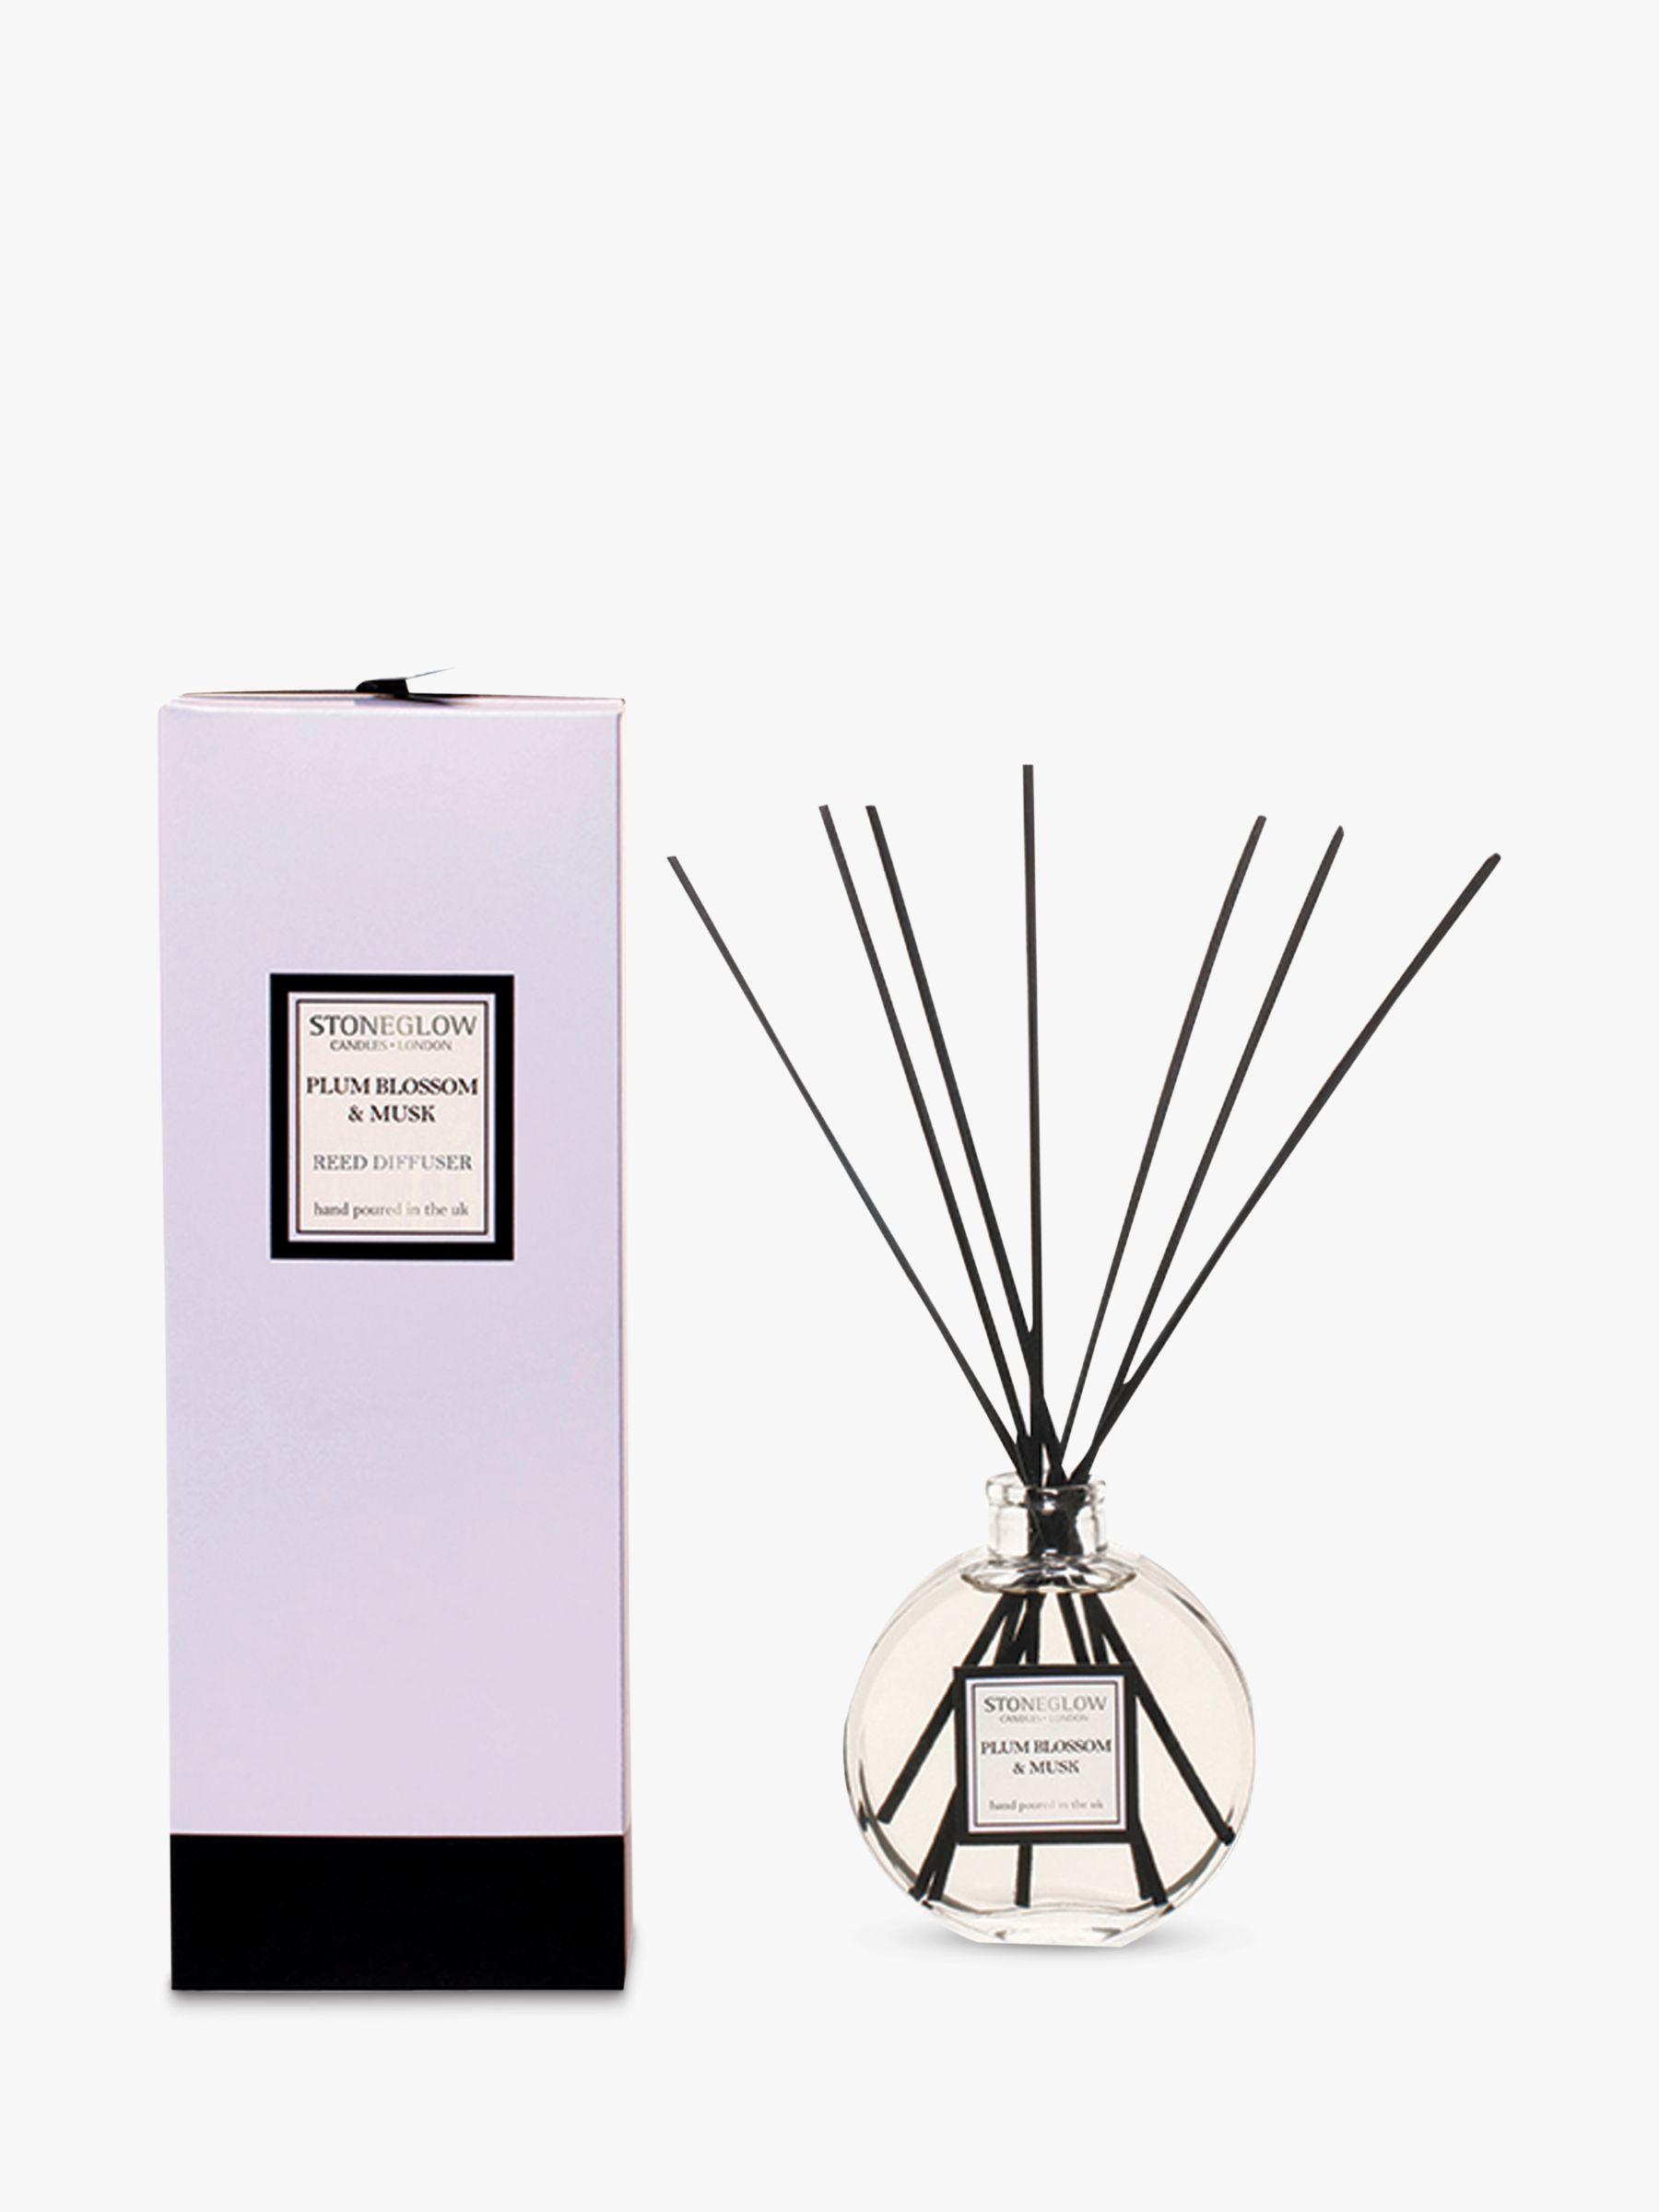 Stoneglow Stoneglow Plum Blossom and Musk Diffuser, 140ml